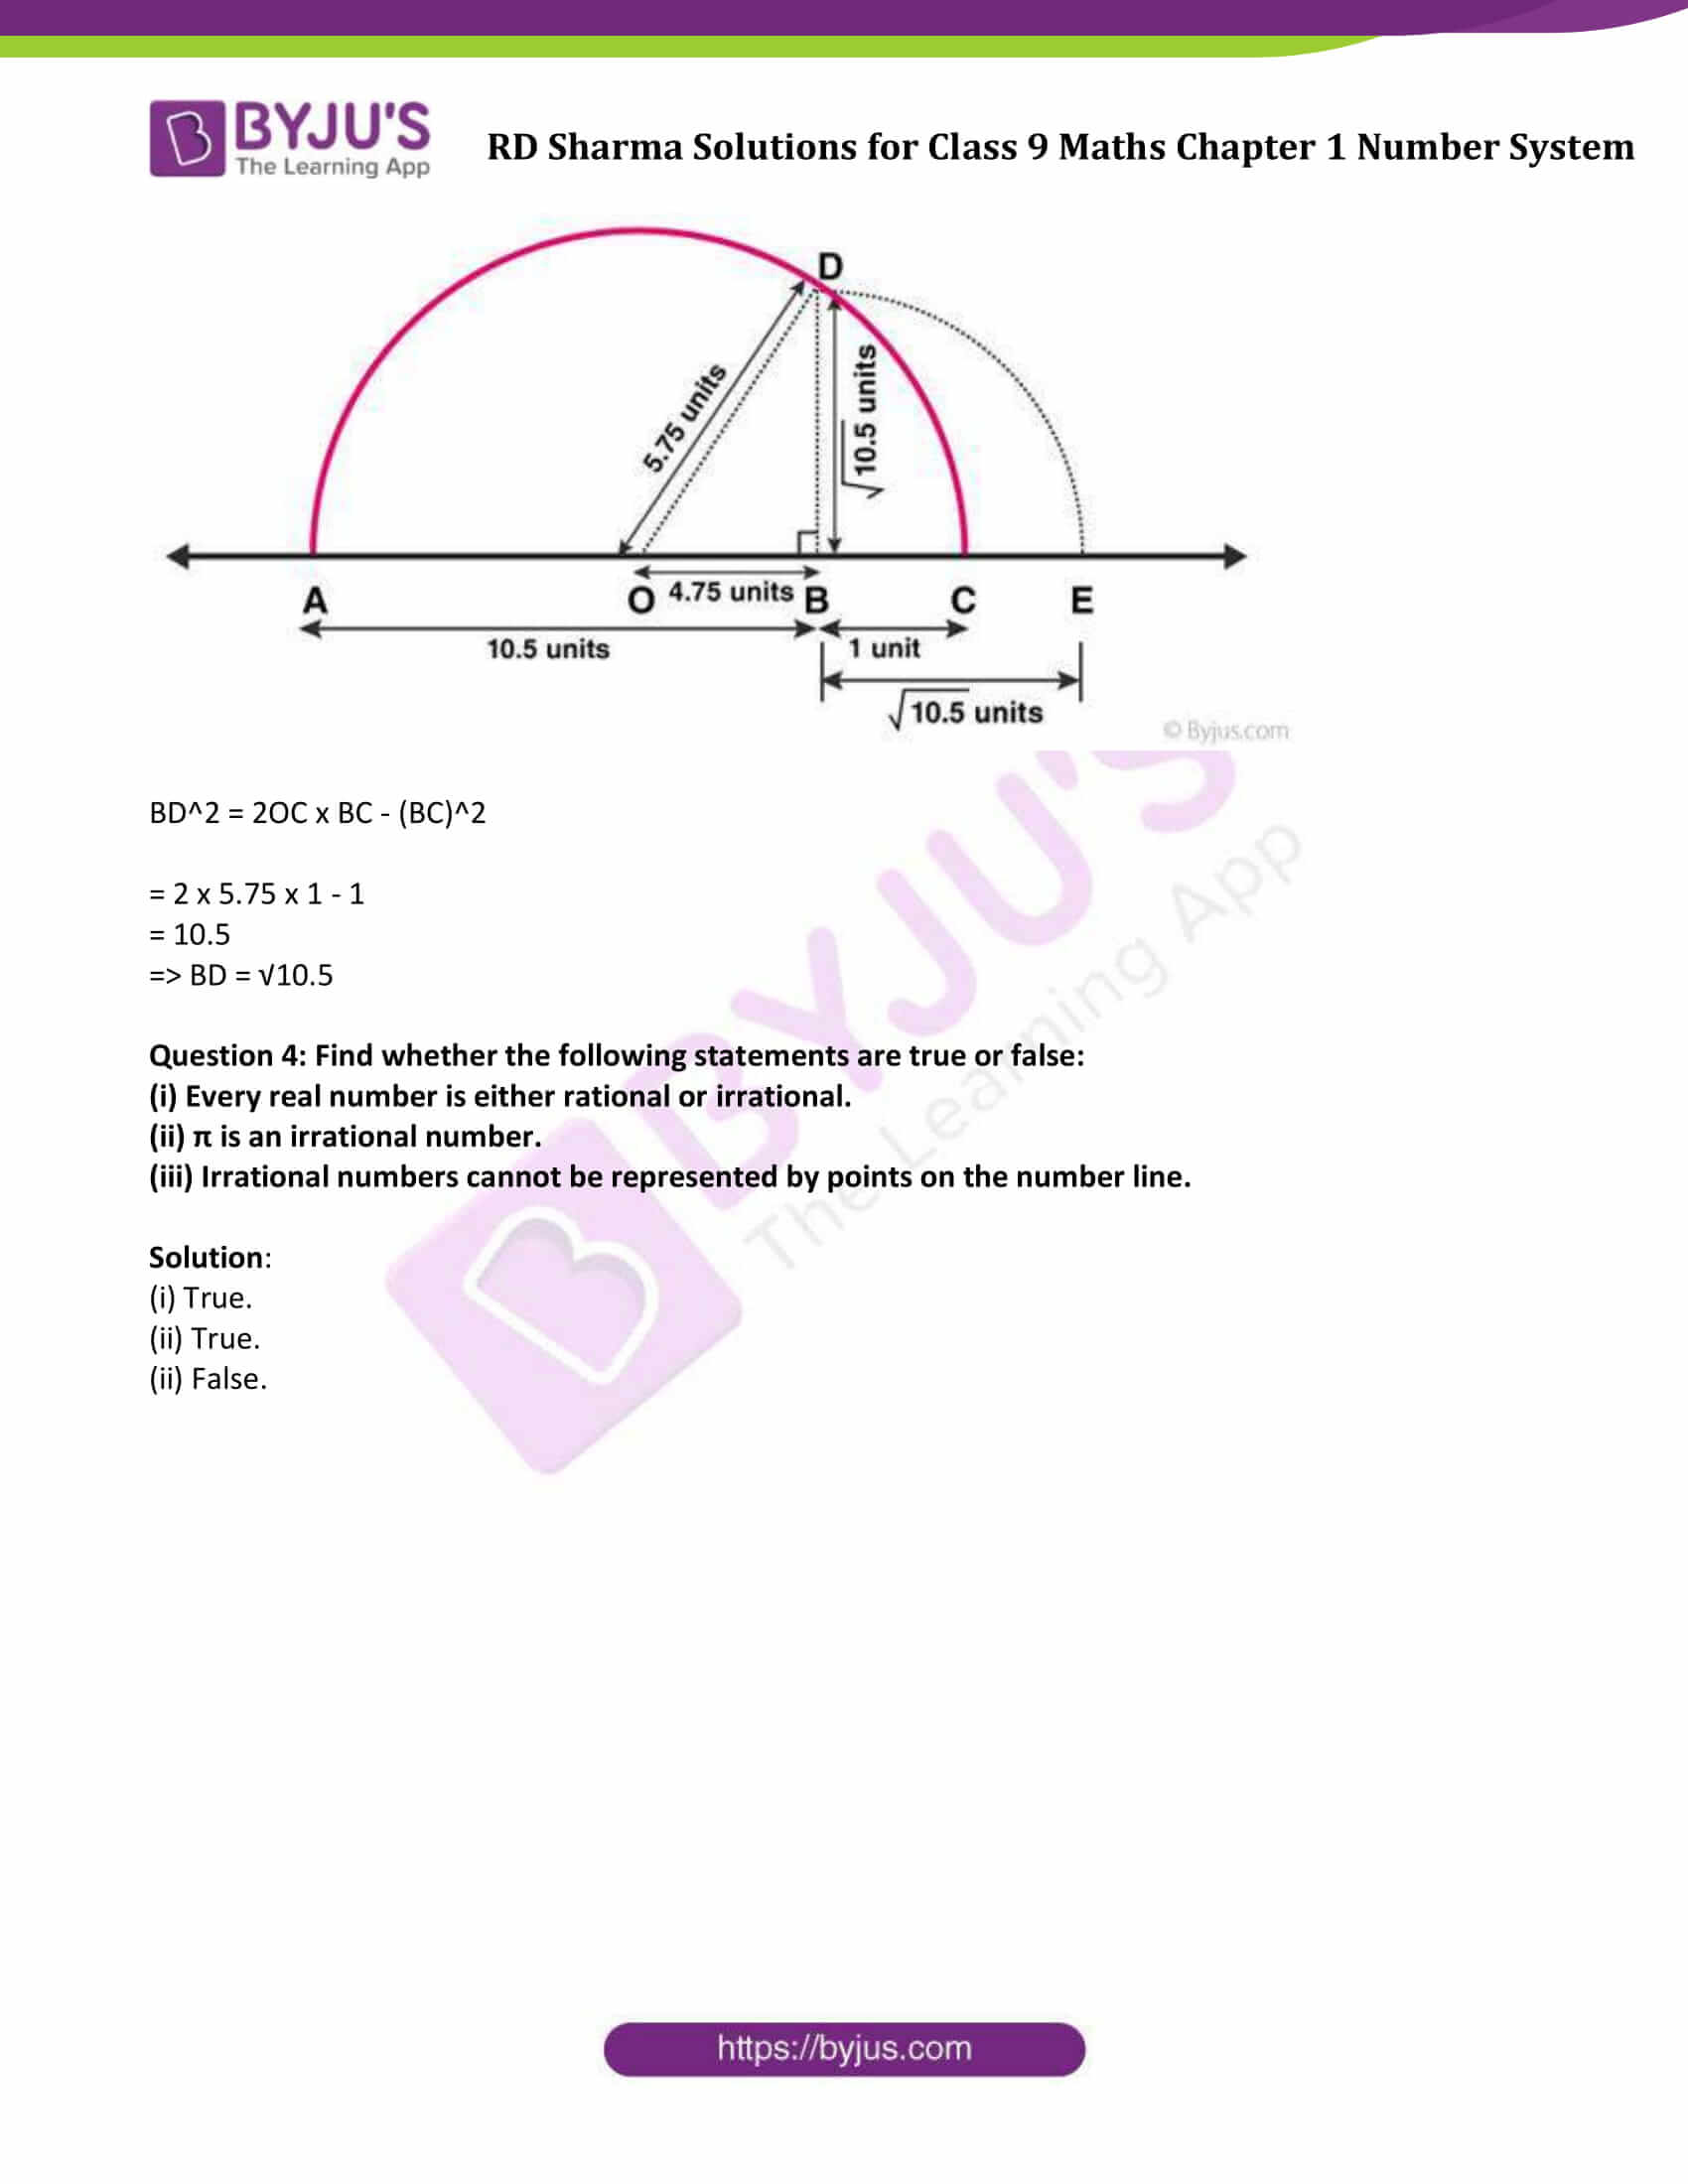 RD Sharma Solution class 9 Maths Chapter 1 Number System 23